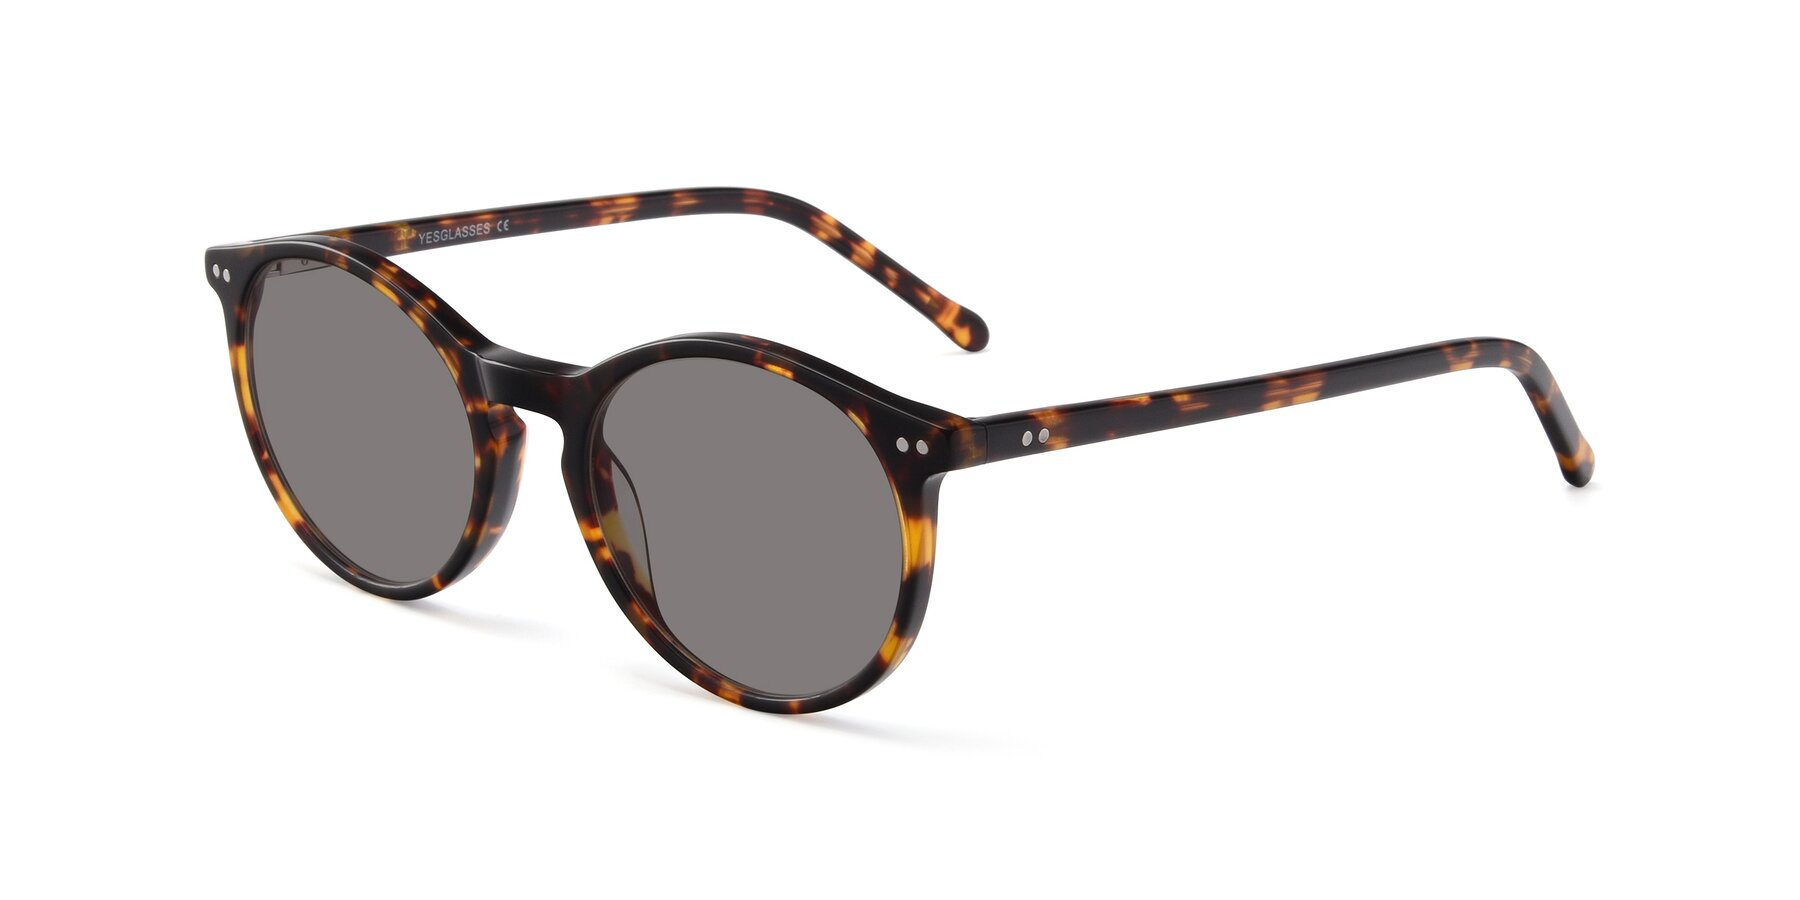 Angle of JS9026A in Tortoise with Medium Gray Tinted Lenses